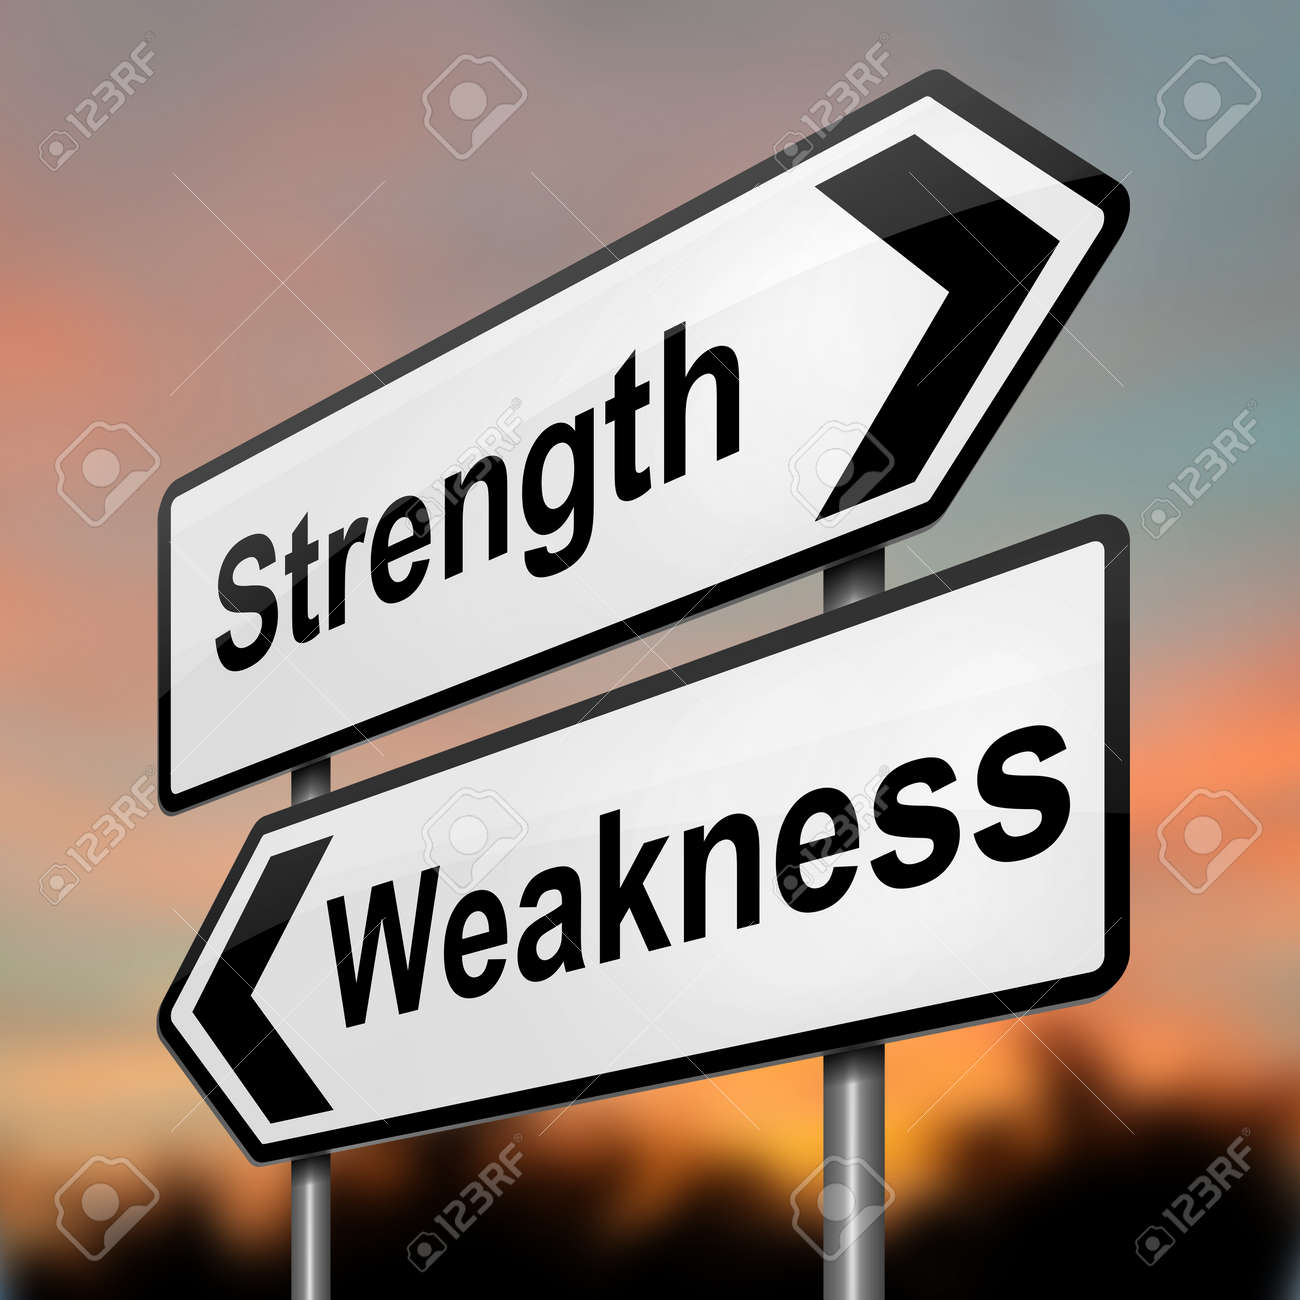 Illustration depicting a roadsign with a strength and weakness concept. Blurred dusk background. - 15428198